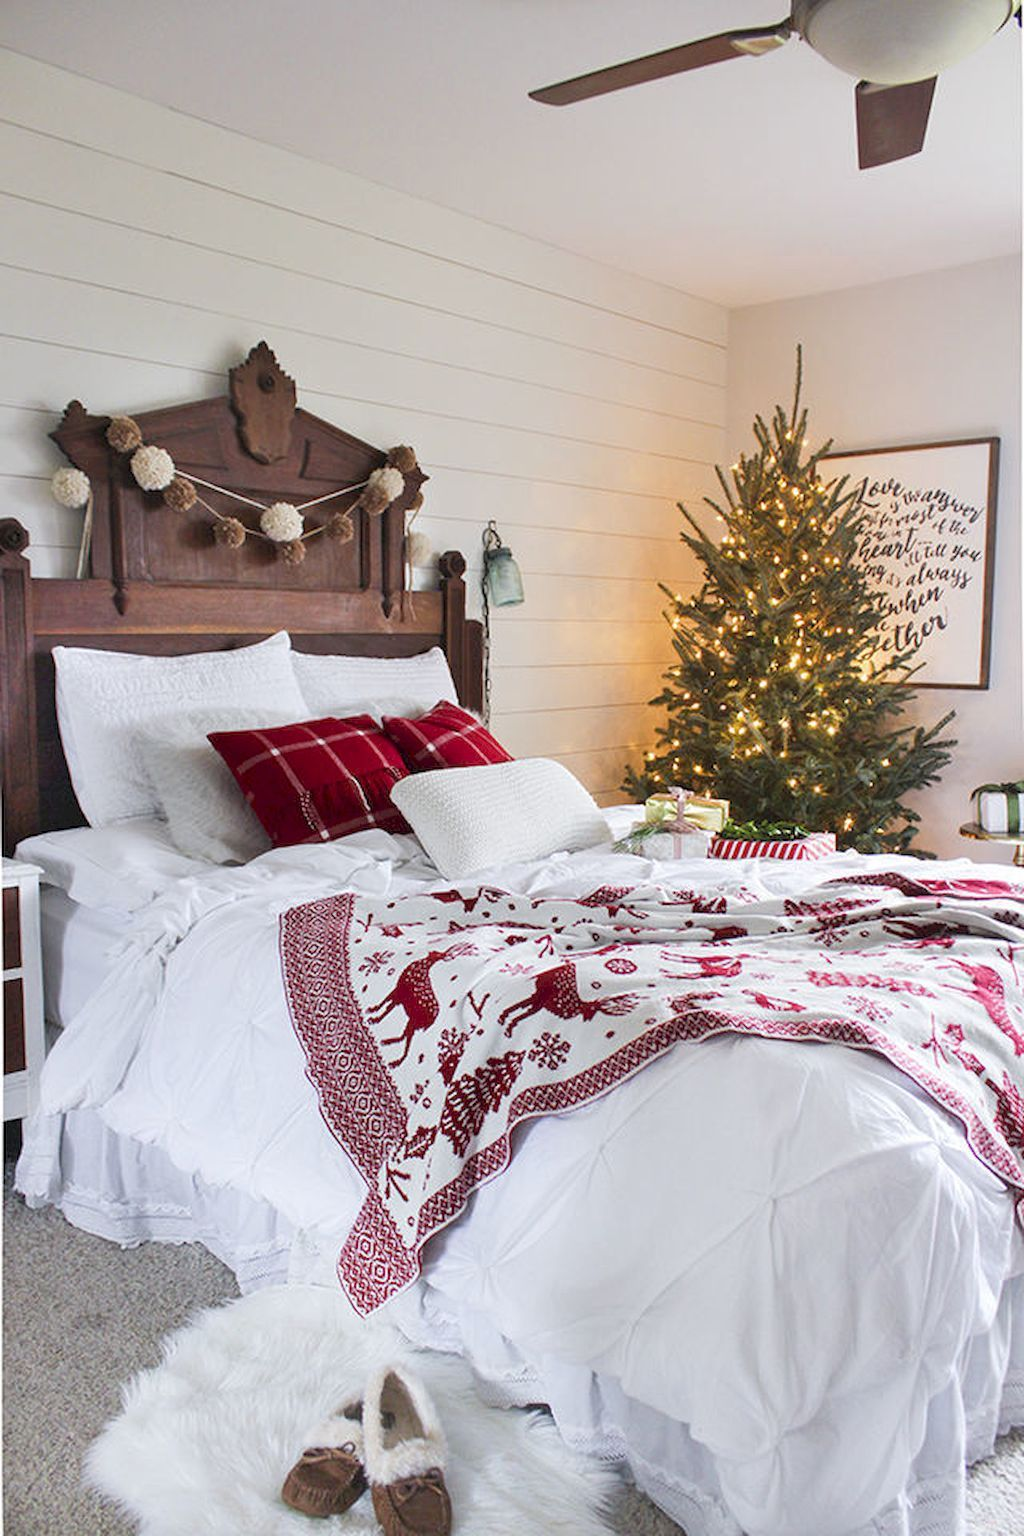 cool bedroom decorating ideas. Simple Bedroom Cool 50 Simple And Easy Christmas Bedroom Decorating Ideas  Httpscrowdecorcom50simpleeasychristmasbedroomdecoratingideas Throughout